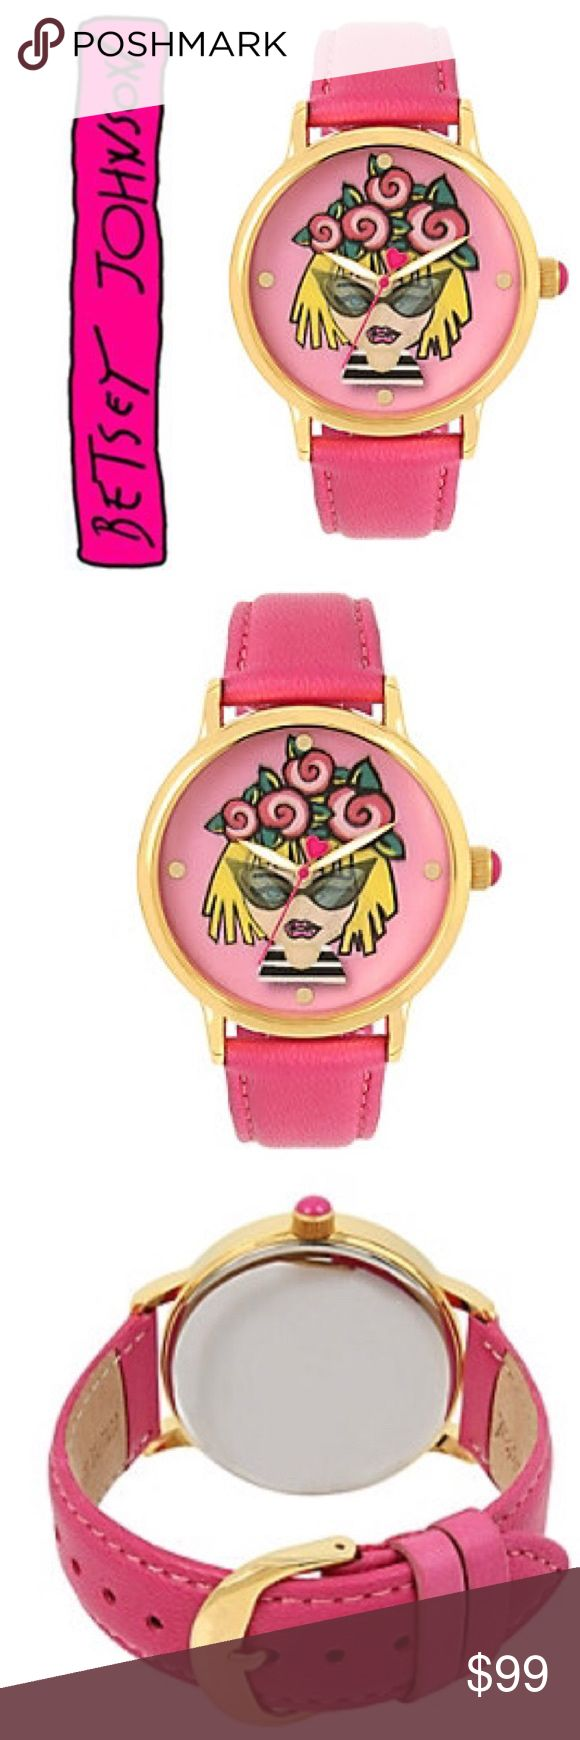 Betsey Johnson Betseyest Betsey Pink Emoji Watch Roses emoji motif watch Ladies round polished gold tone case Pink lenticular printed dial Metal dot hour markers Quartz movement Pink genuine leather strap Signature Betsey Johnson fuchsia second hand Water Resistant: 3ATM Buckle closure Case Size: 42mm Case Thickness:11mm Strap Length: 155-200mm Strap Width:20mm Betsey Johnson Accessories Watches